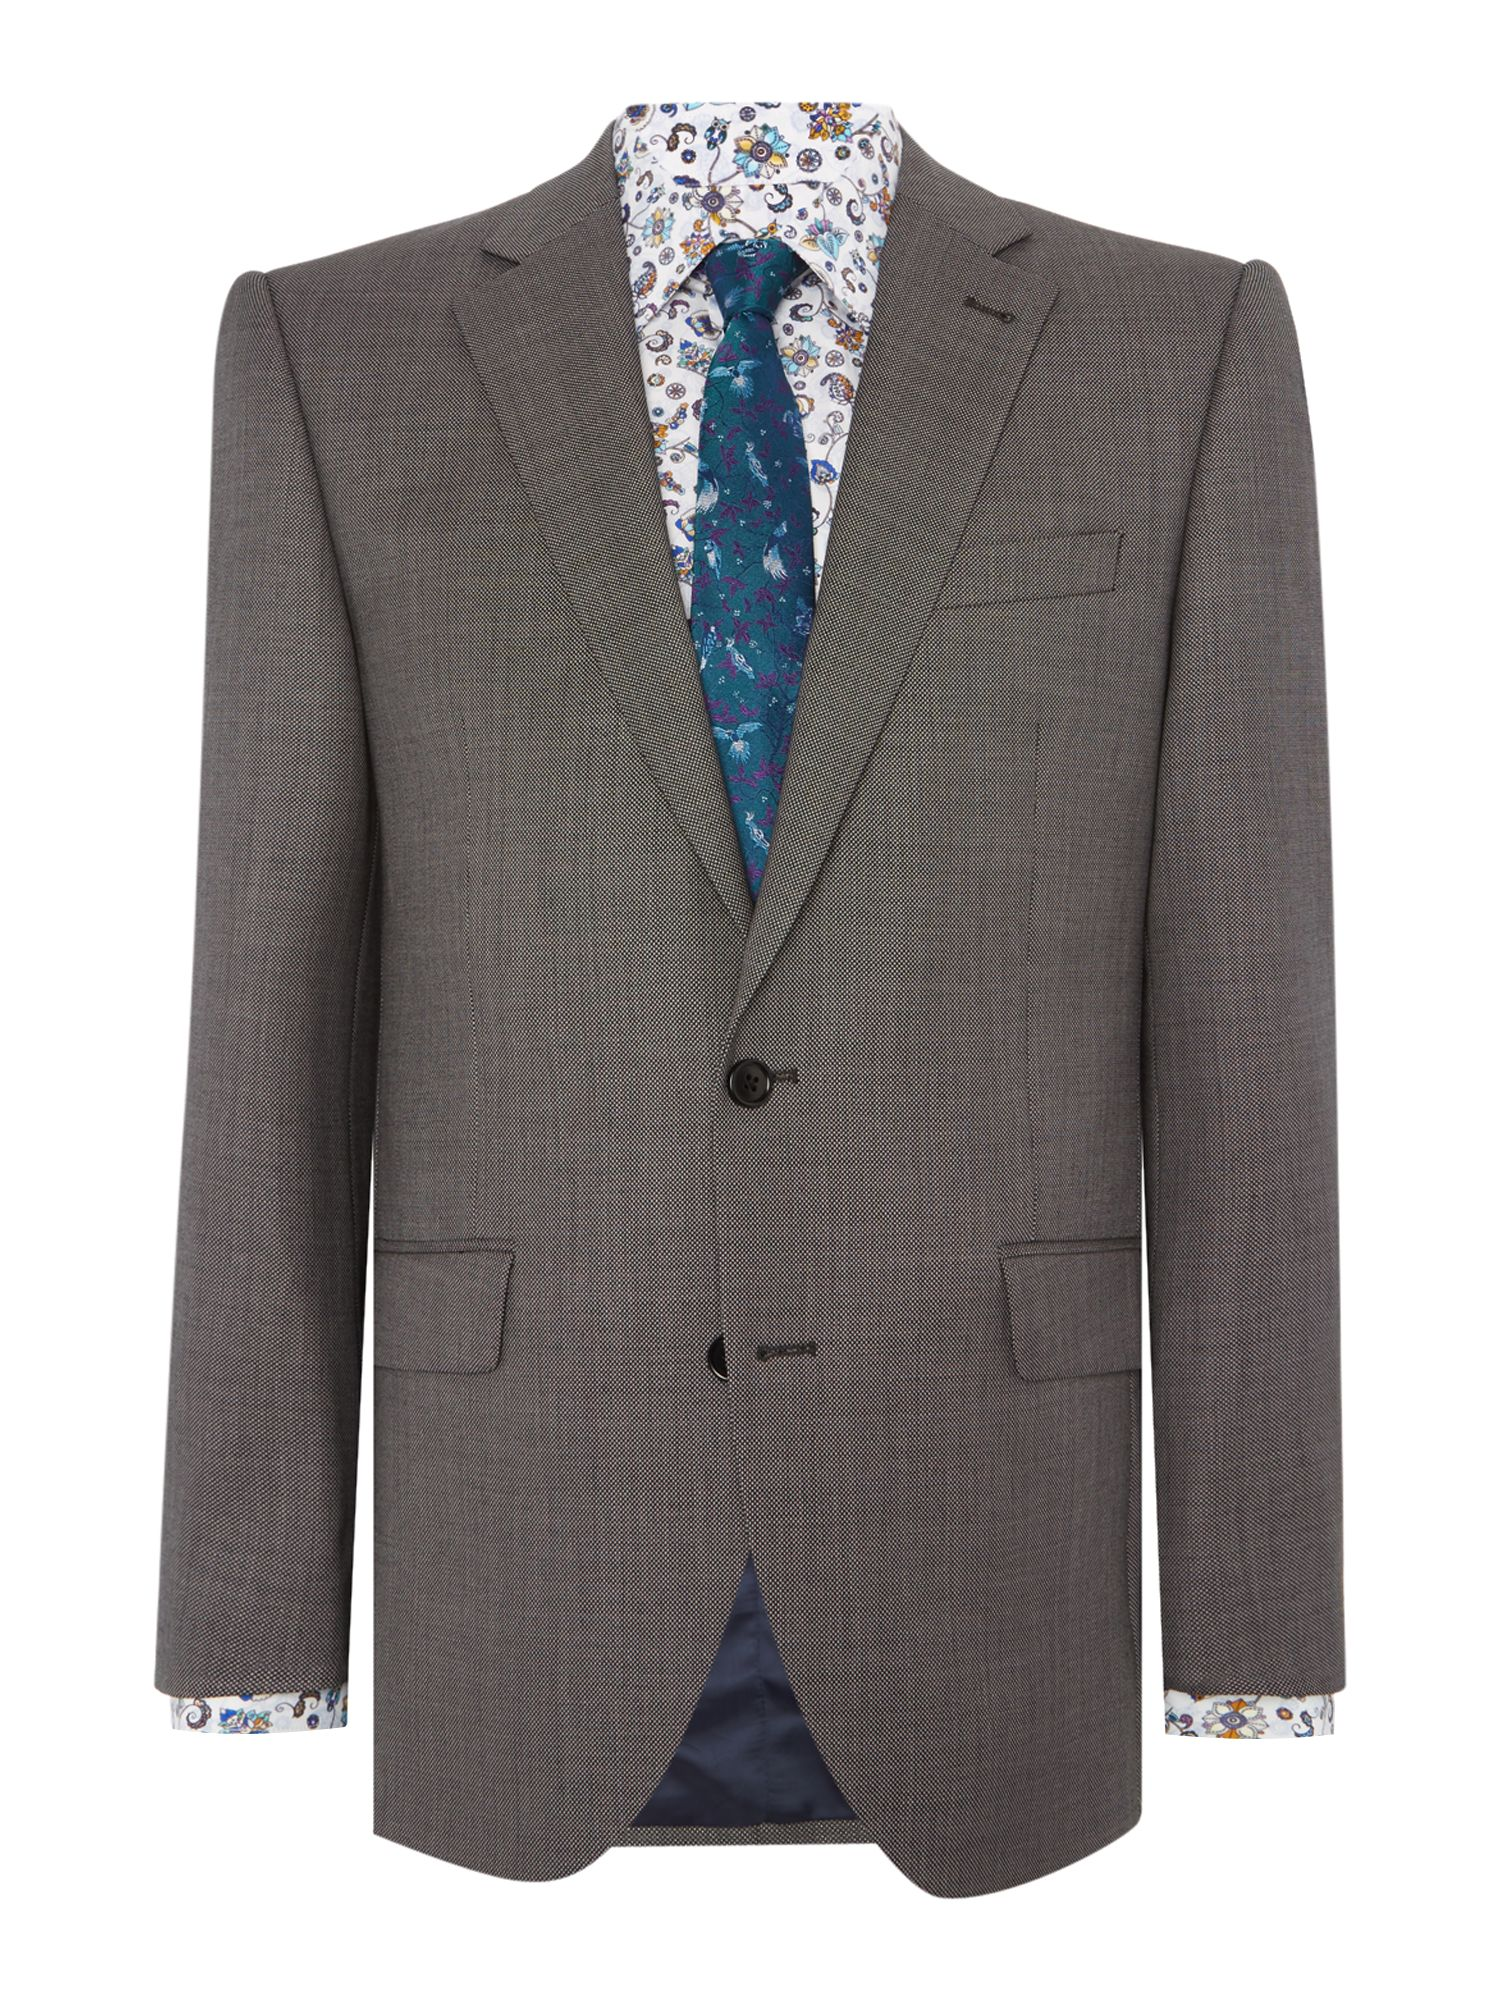 how to buy a suit jacket